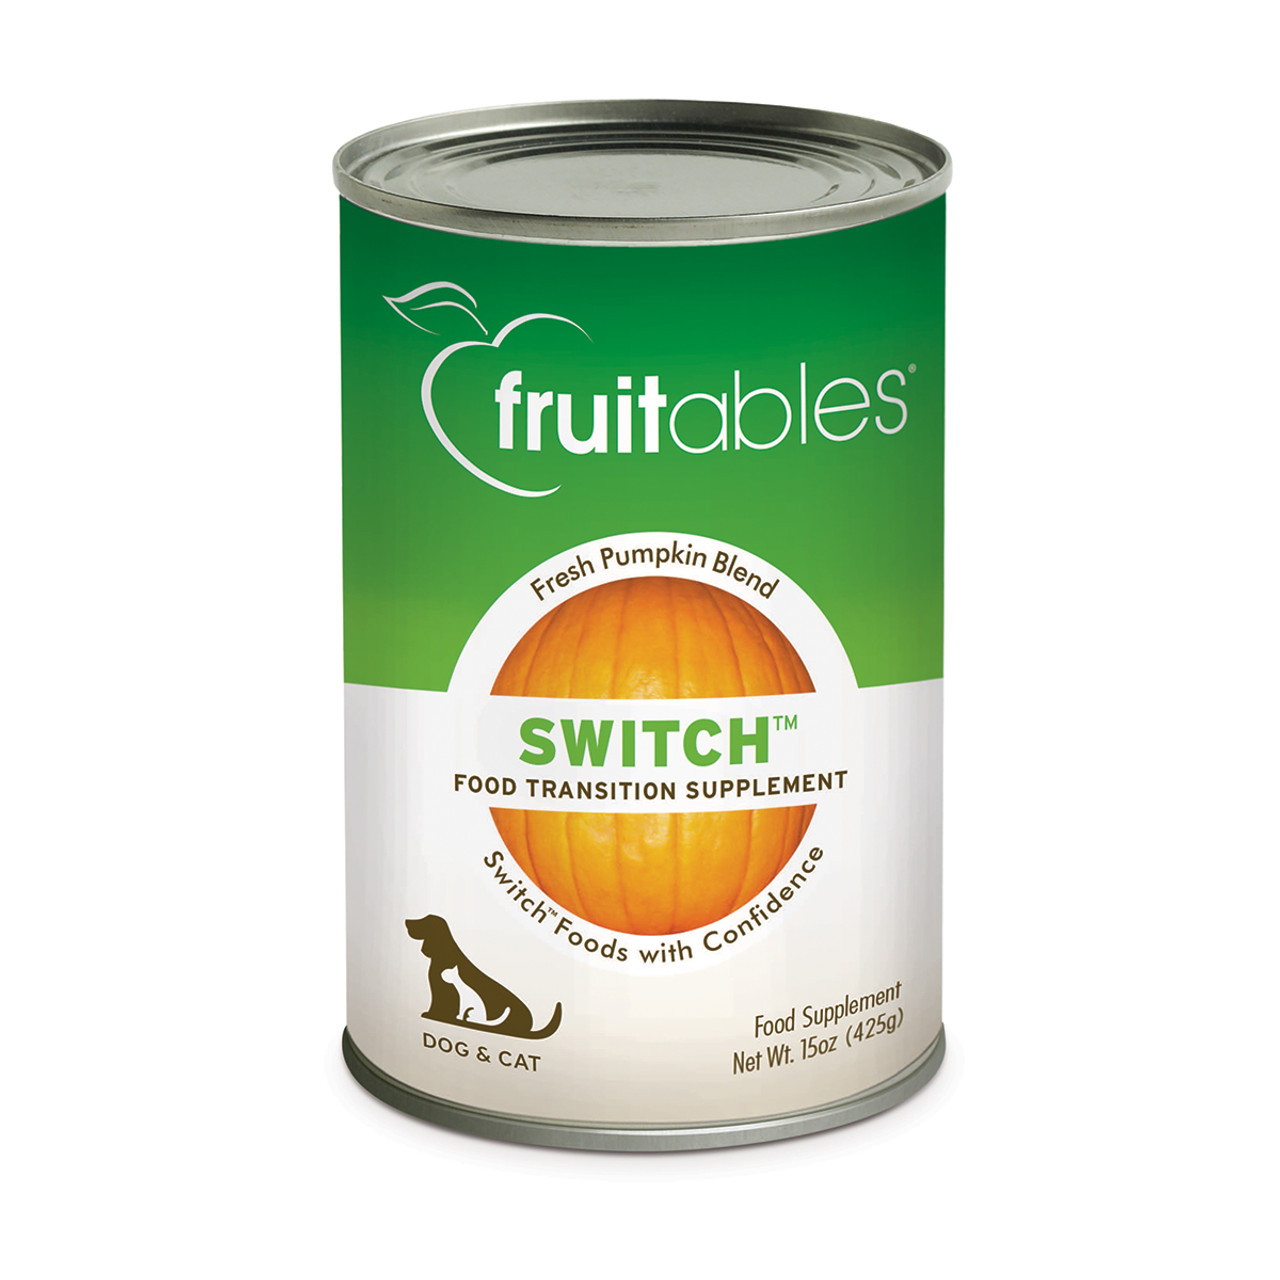 Fruitables Switch Food Transition Supplement for Dogs & Cats